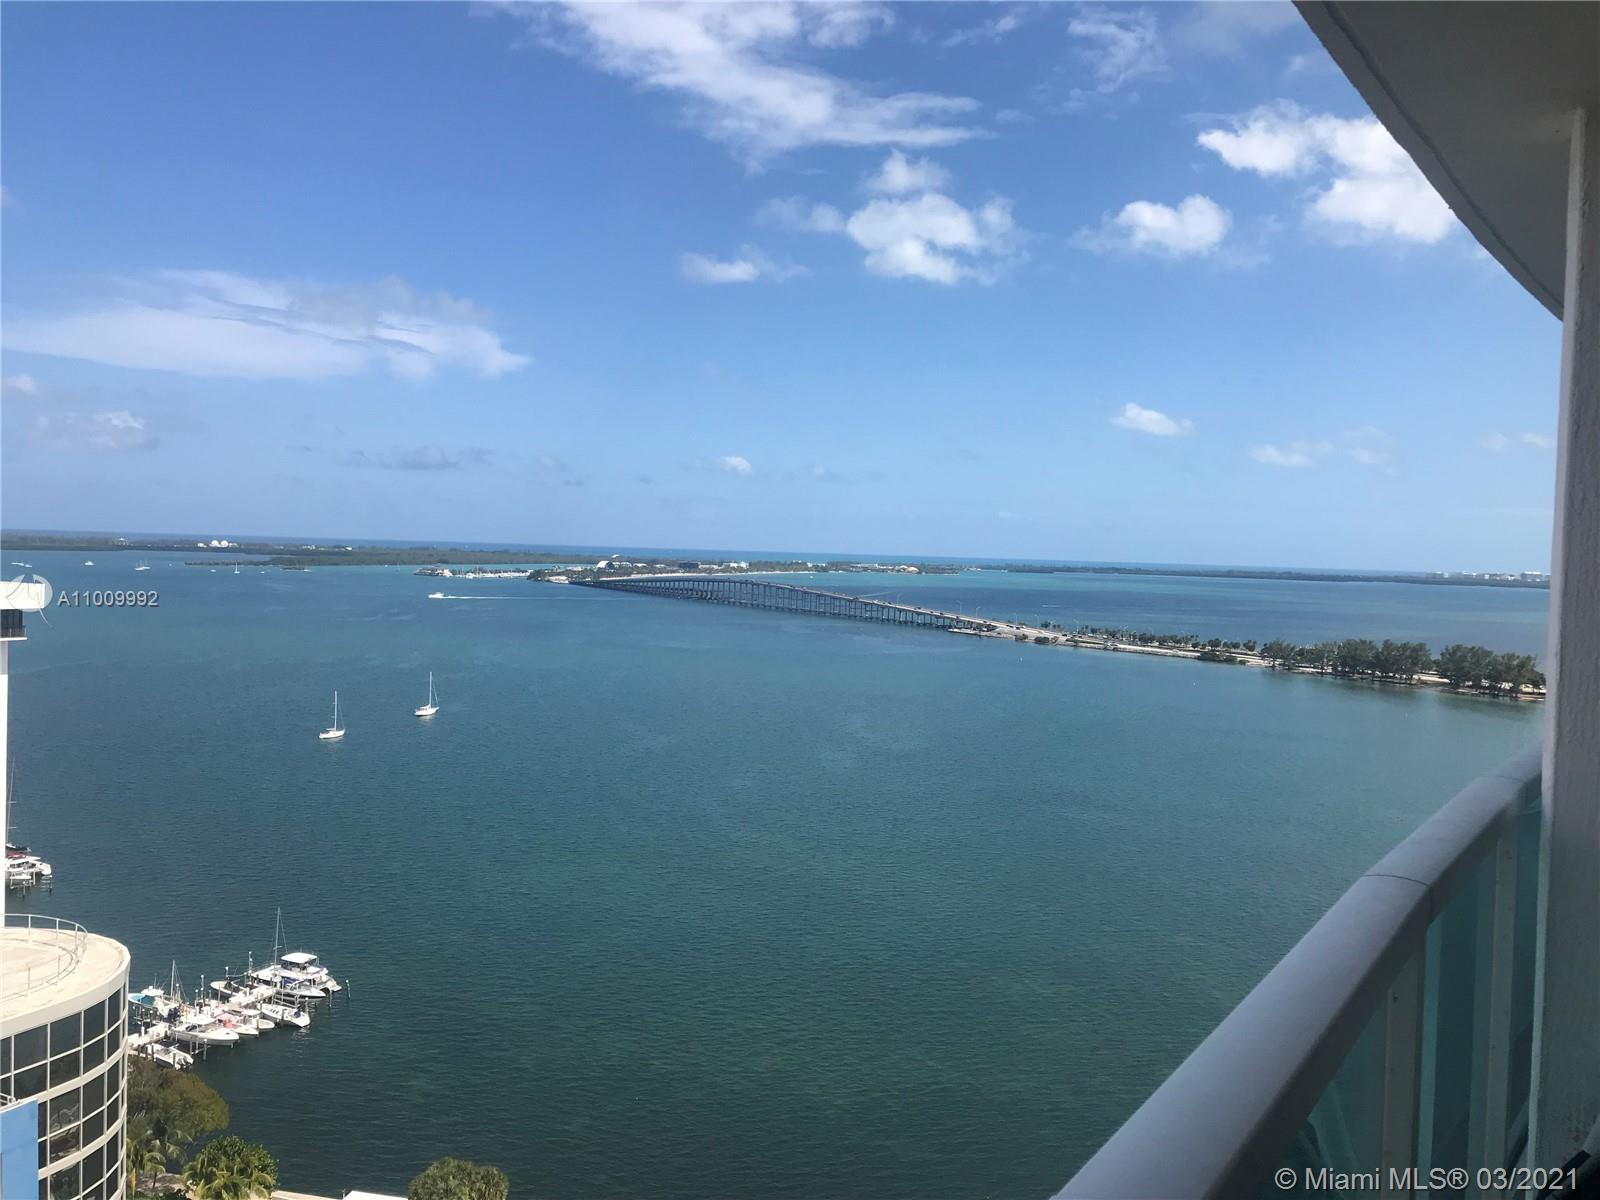 Amazing 1bedroom/1bathroom with great views of Miami skyline as well as Biscayne Bay. Large private